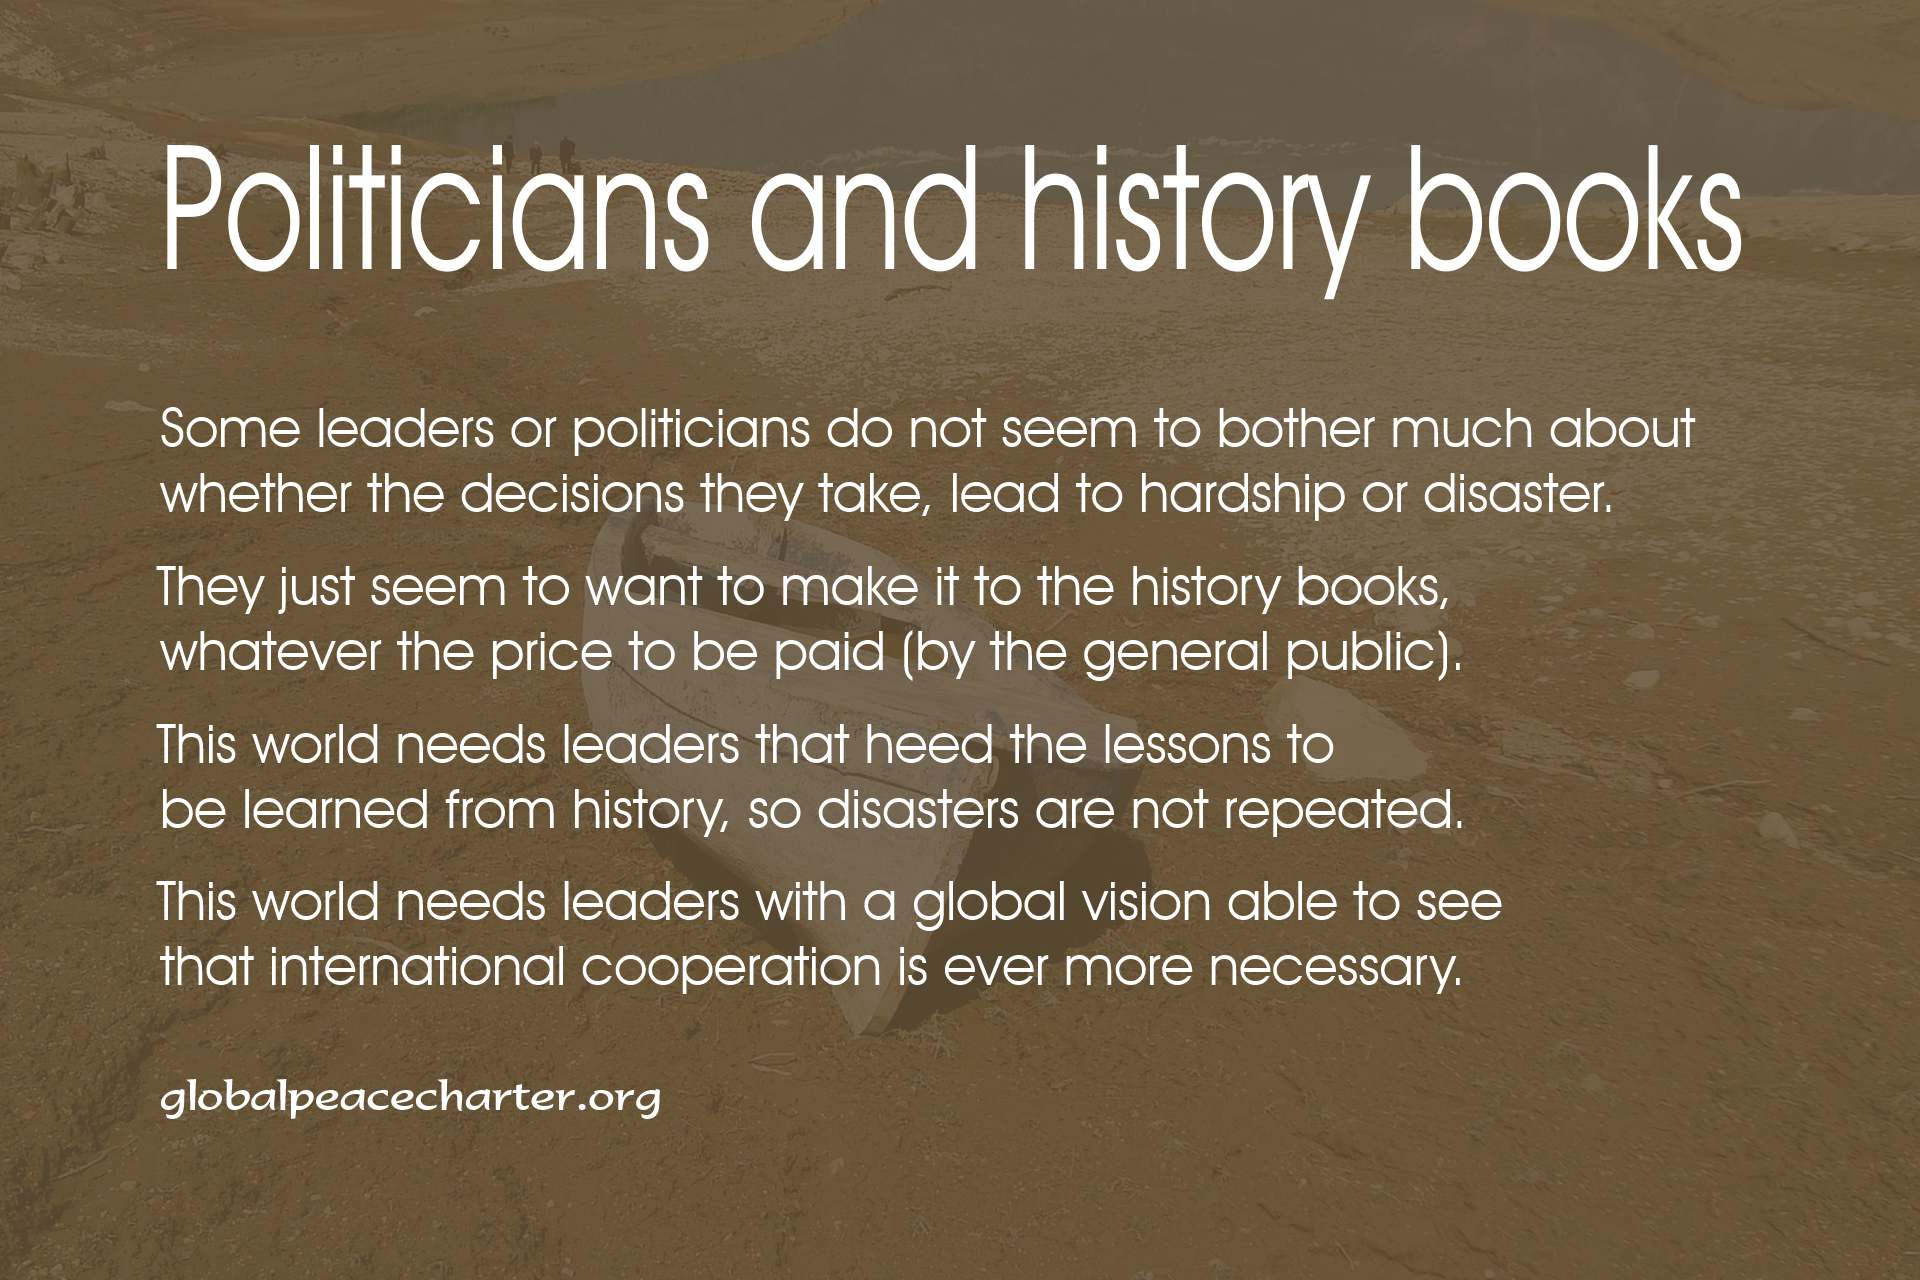 Politicians and history books